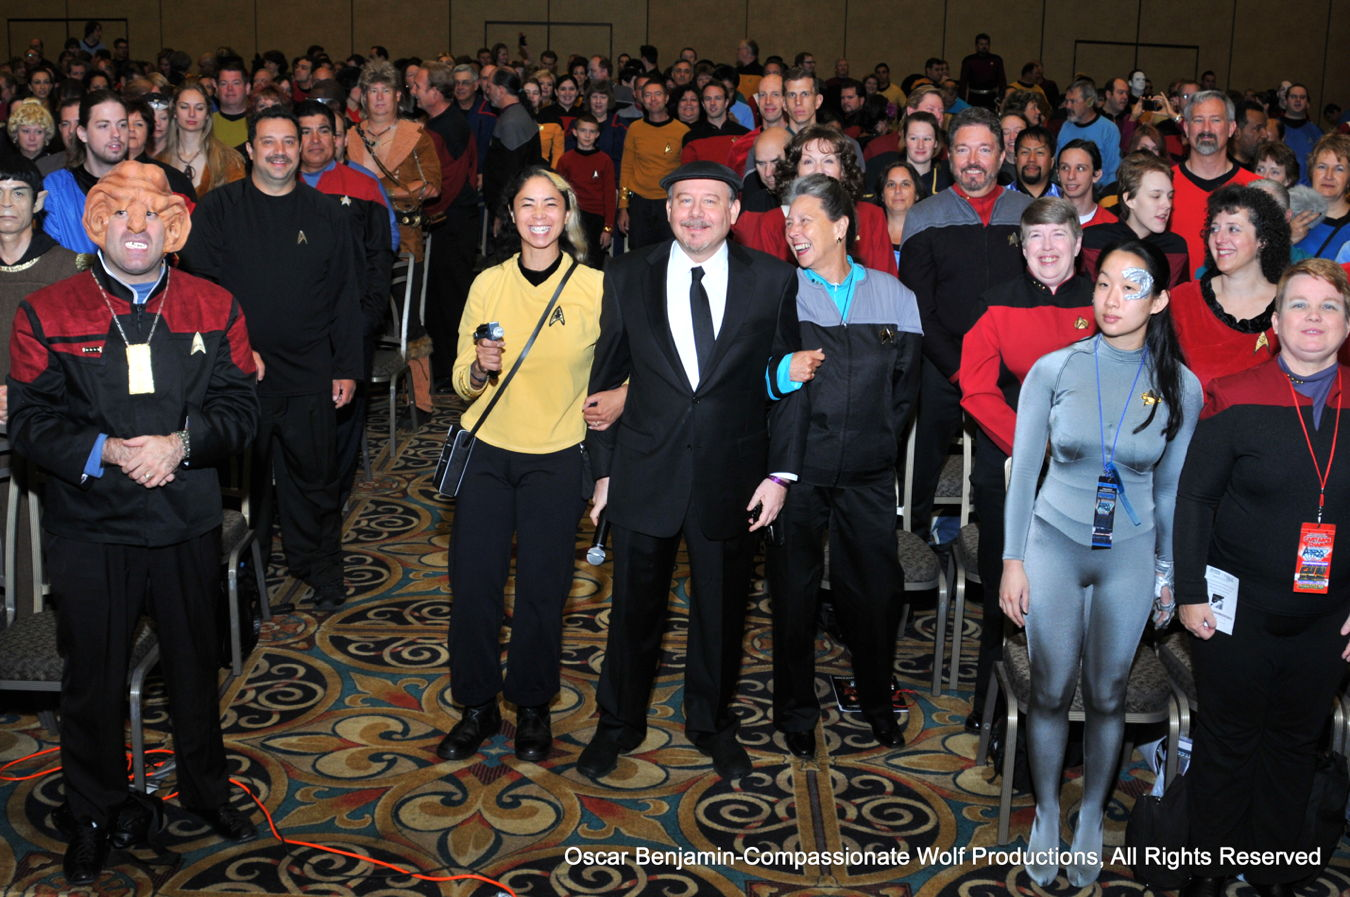 Star Trek: The Cruise - The Un-Conventional Voyage.